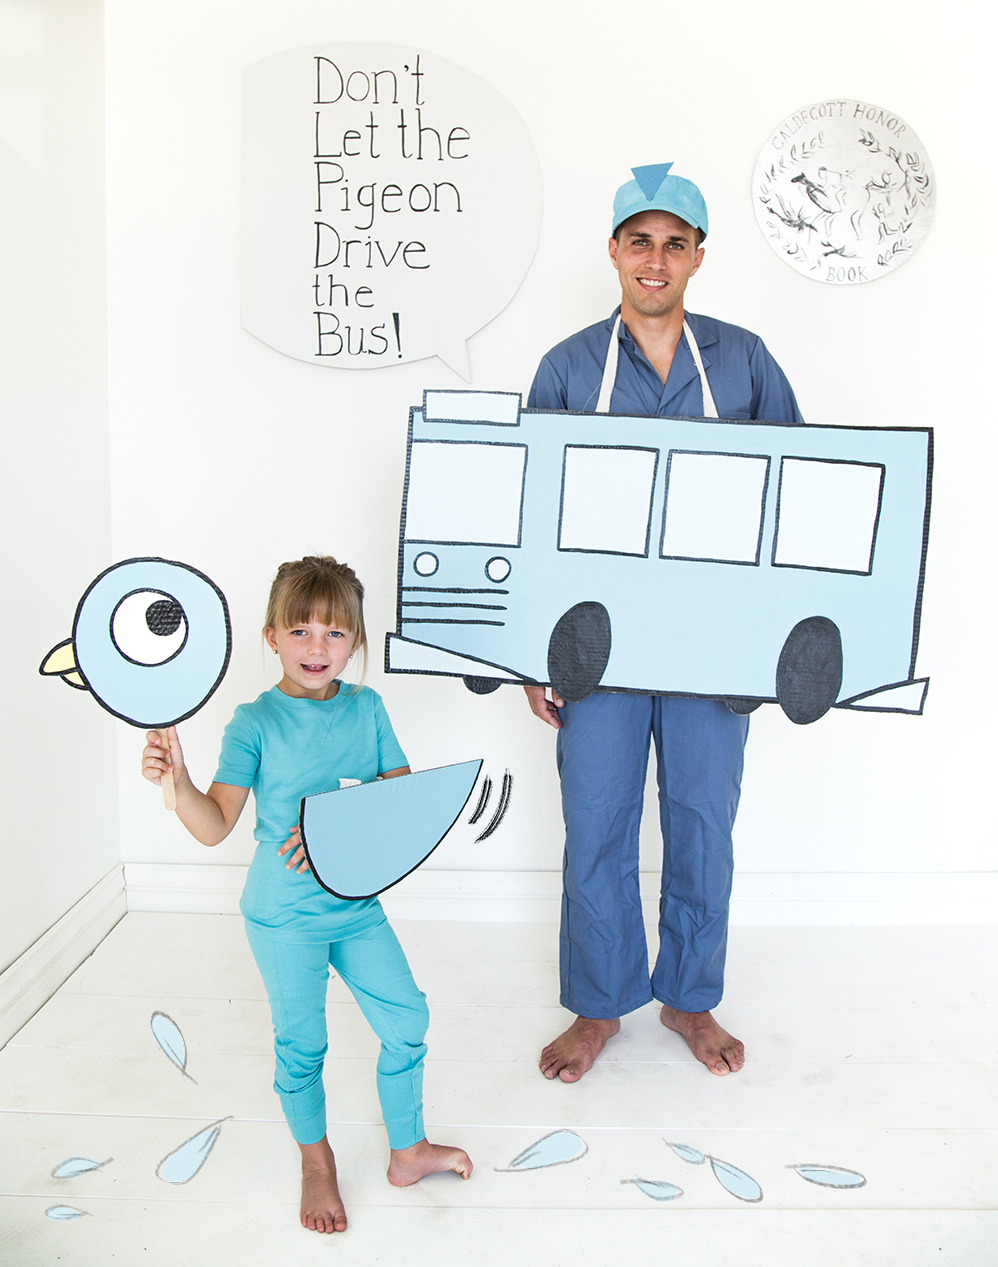 don't-let-the-pigeon-drive-the-bus-costumes-for-a-dad-and-child